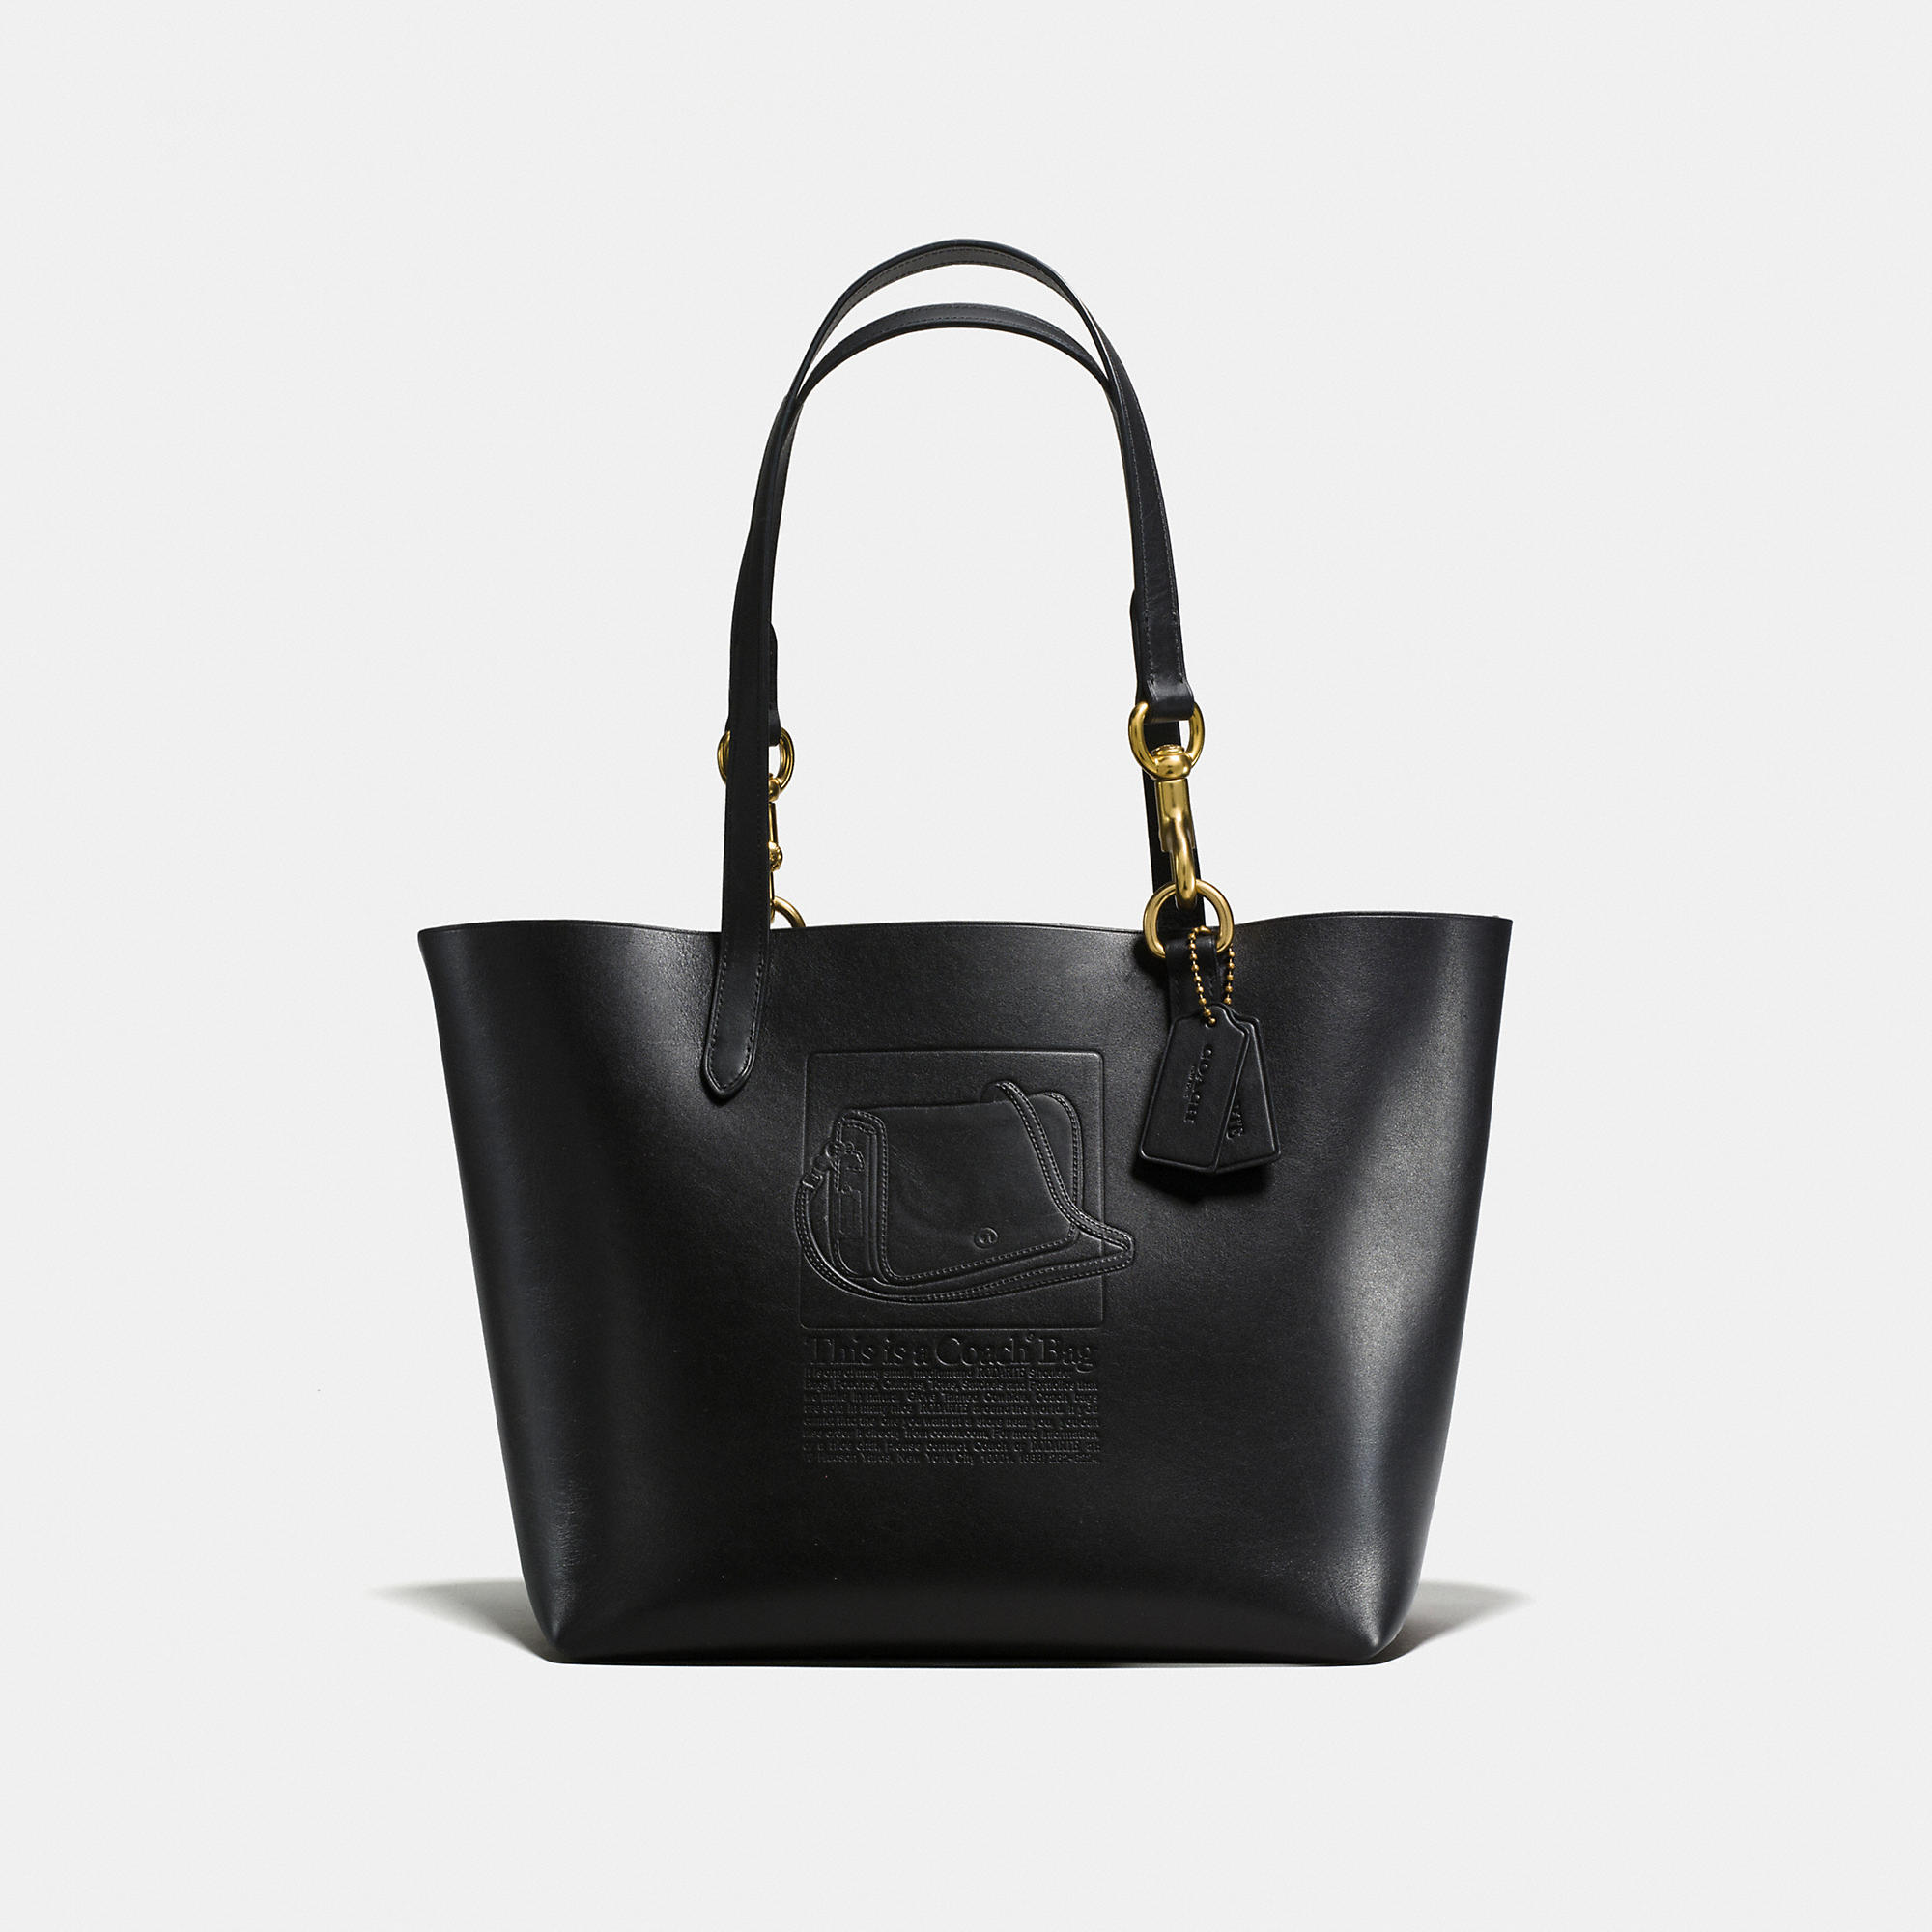 Coach Tote In Glovetanned Leather With Embossed Archive Print